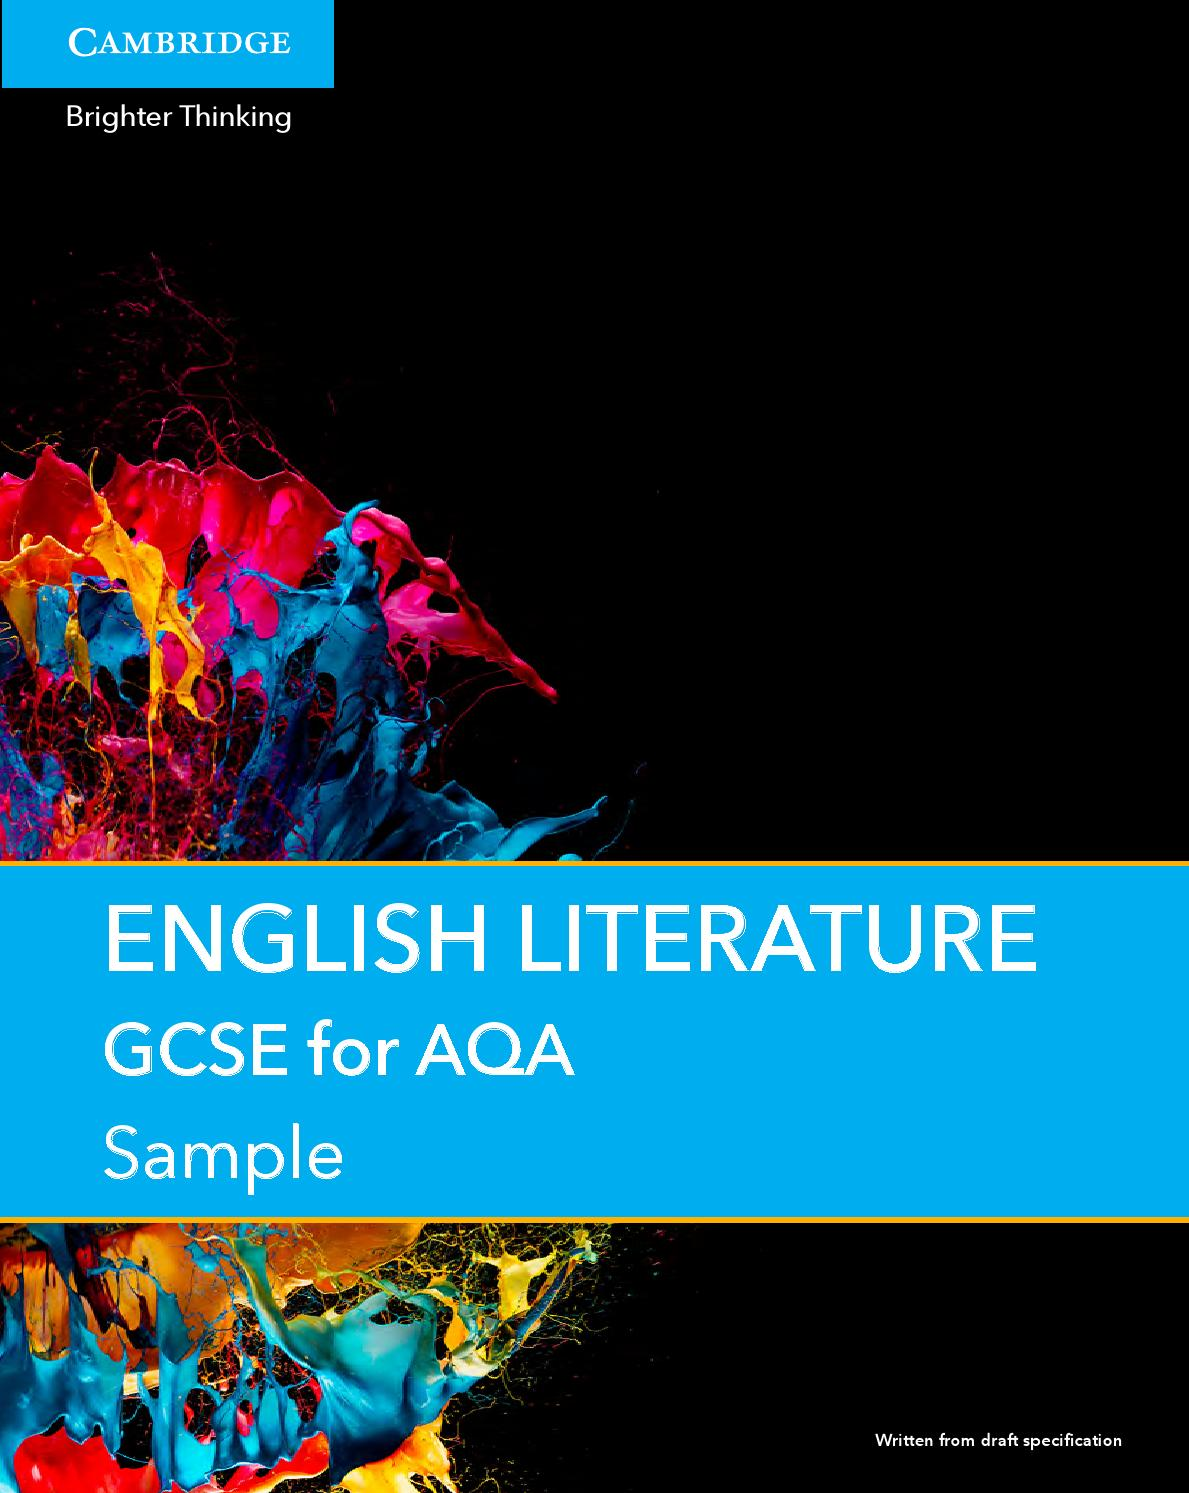 gcse english Gcse definition: general certificate of secondary education: a system of public exams taken in various subjects from the age of about 16, or one of these exams, or a qualification from this system:.